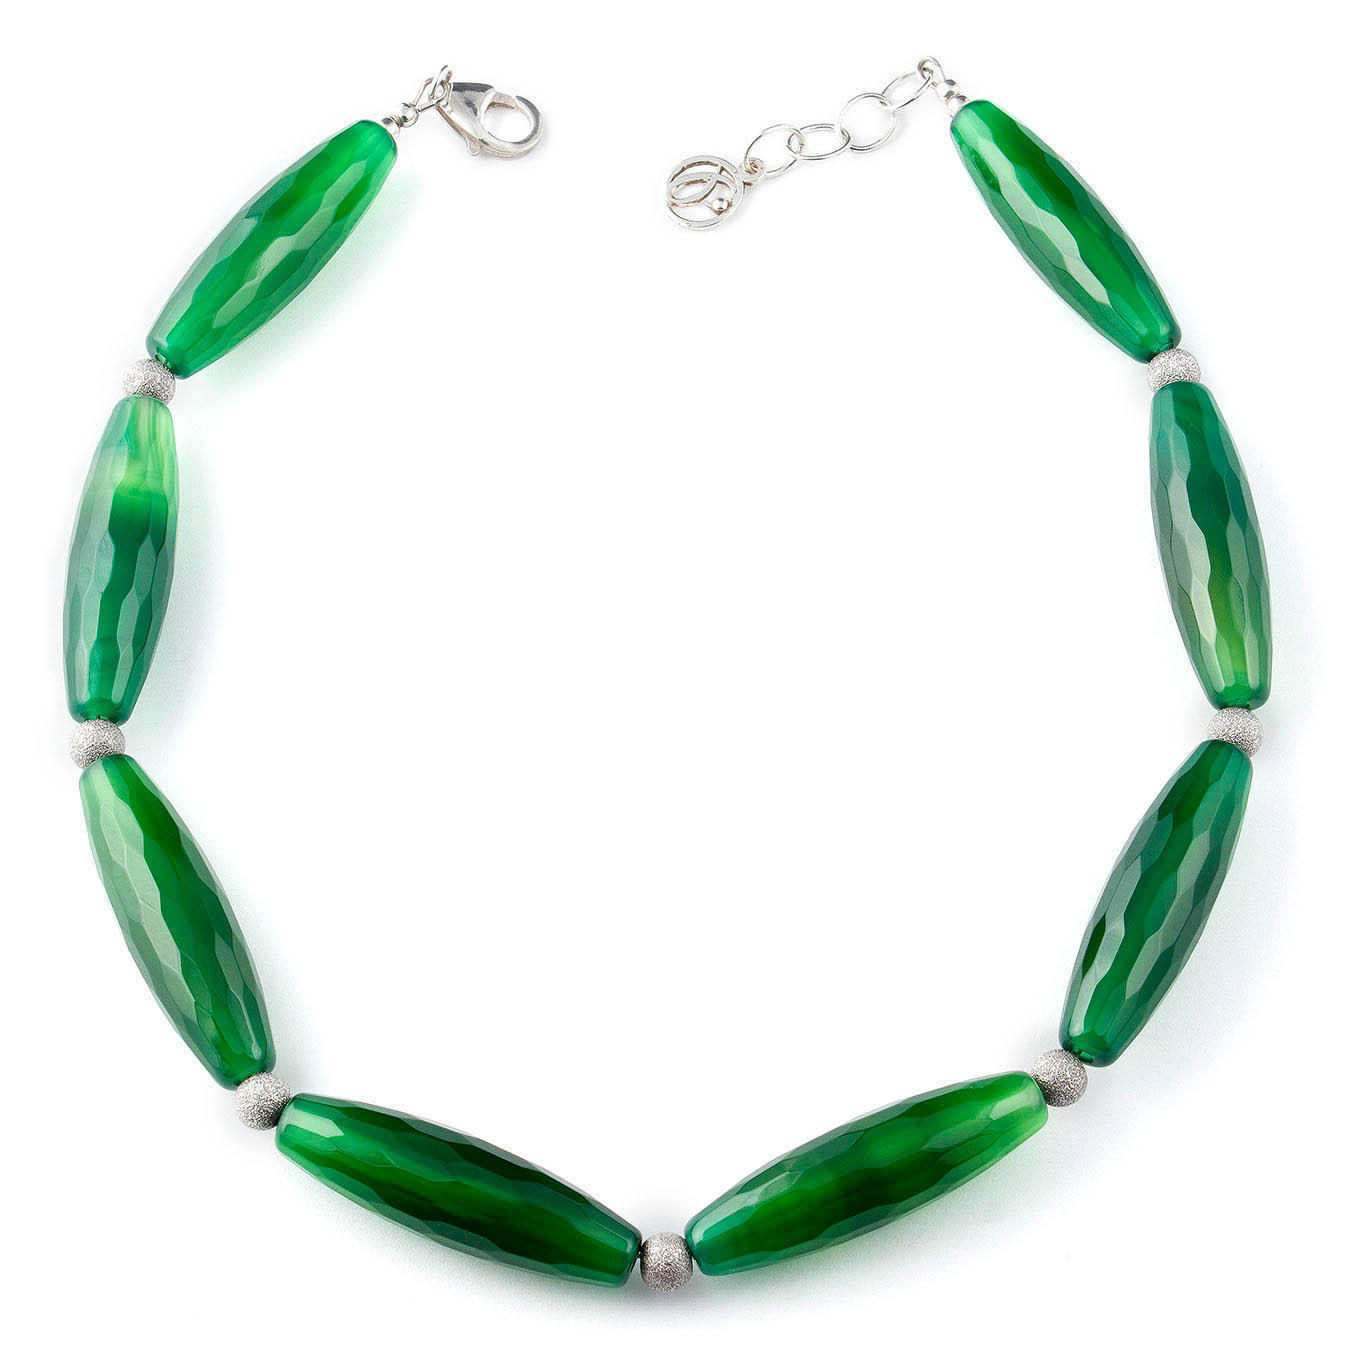 Handcrafted statement bead jewelry made of green agate and silver